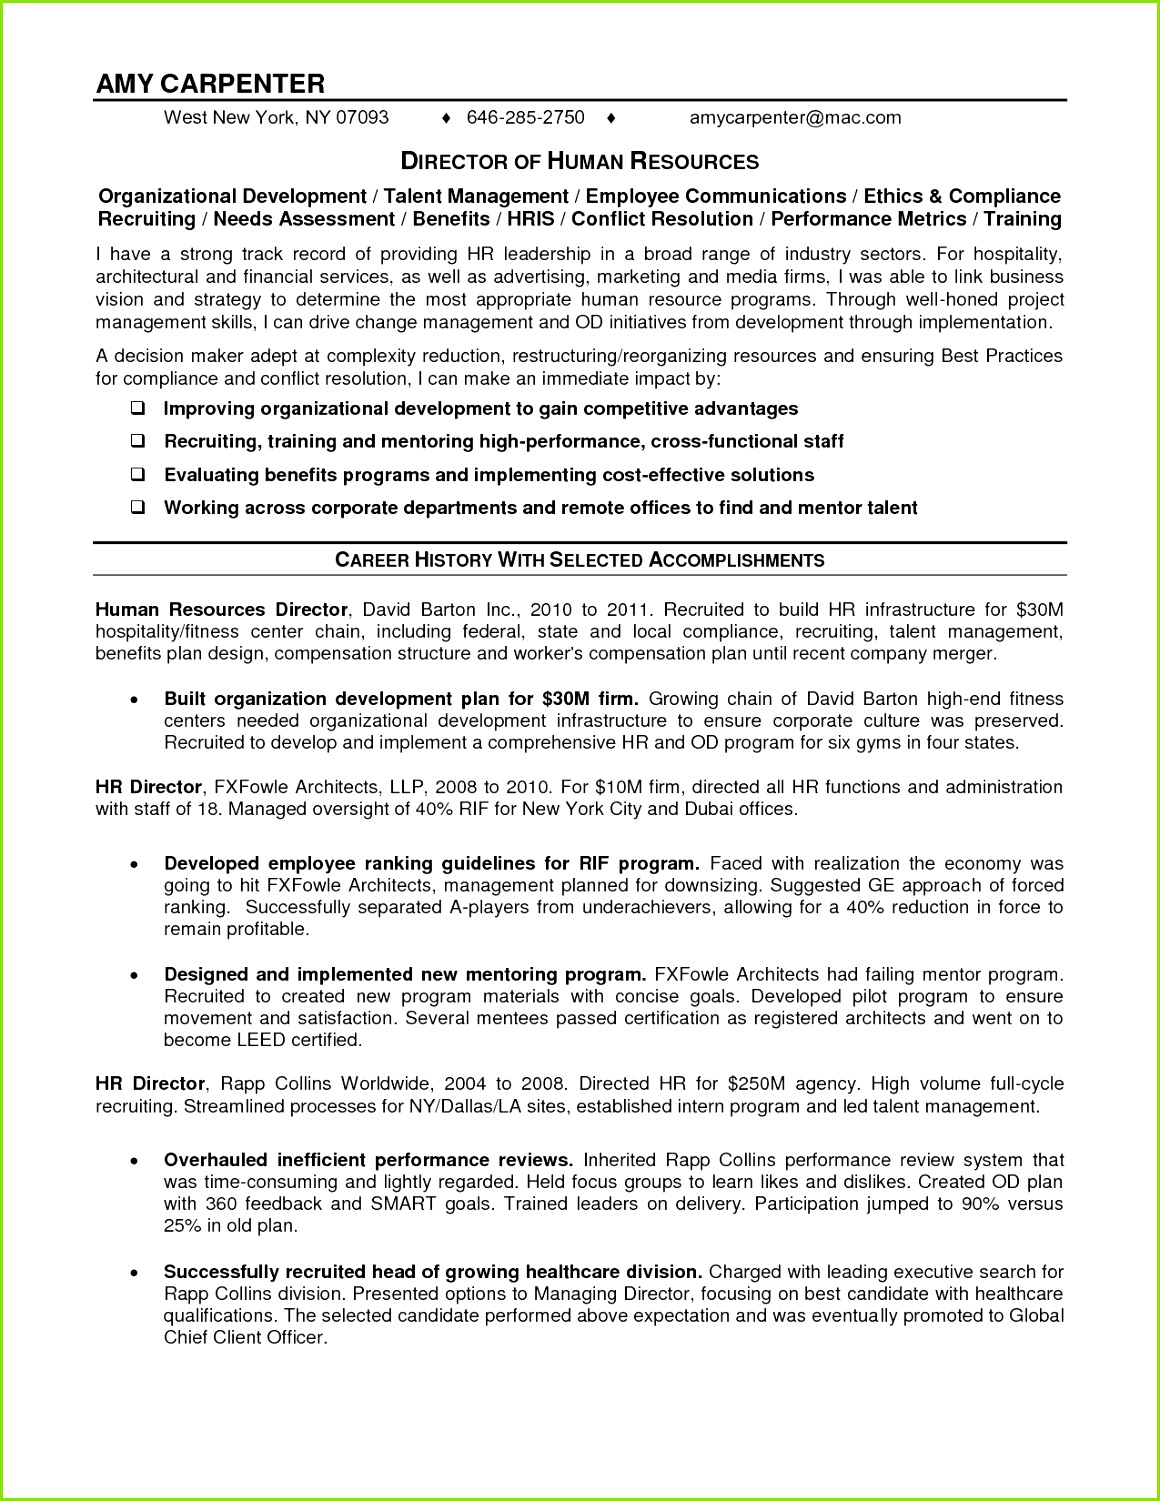 Business Coaching Contract Template New Life Coach Business Plan Template Save Coaching Contract Sample Pdf